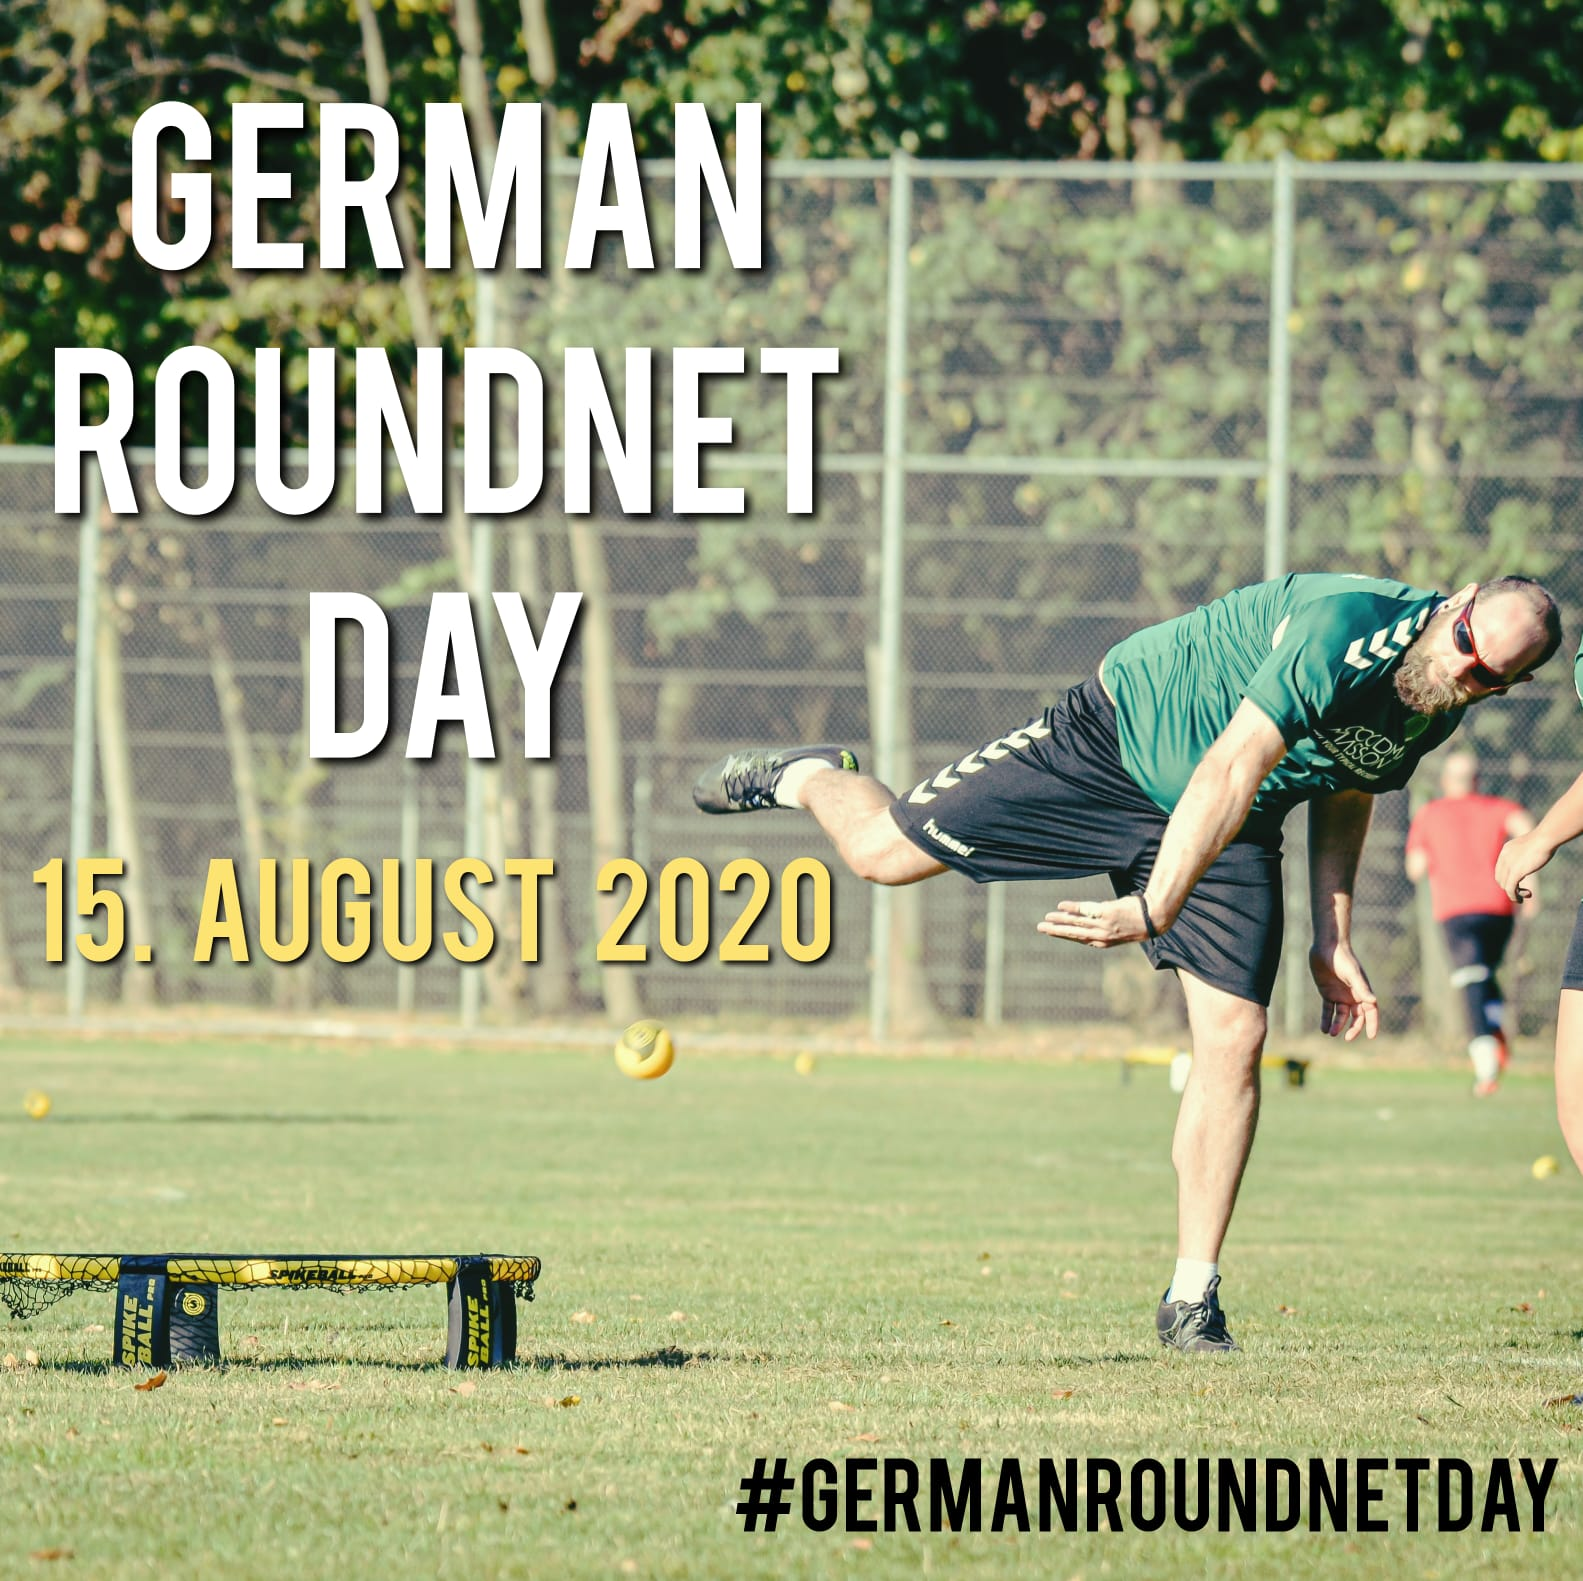 German Roundnet Day